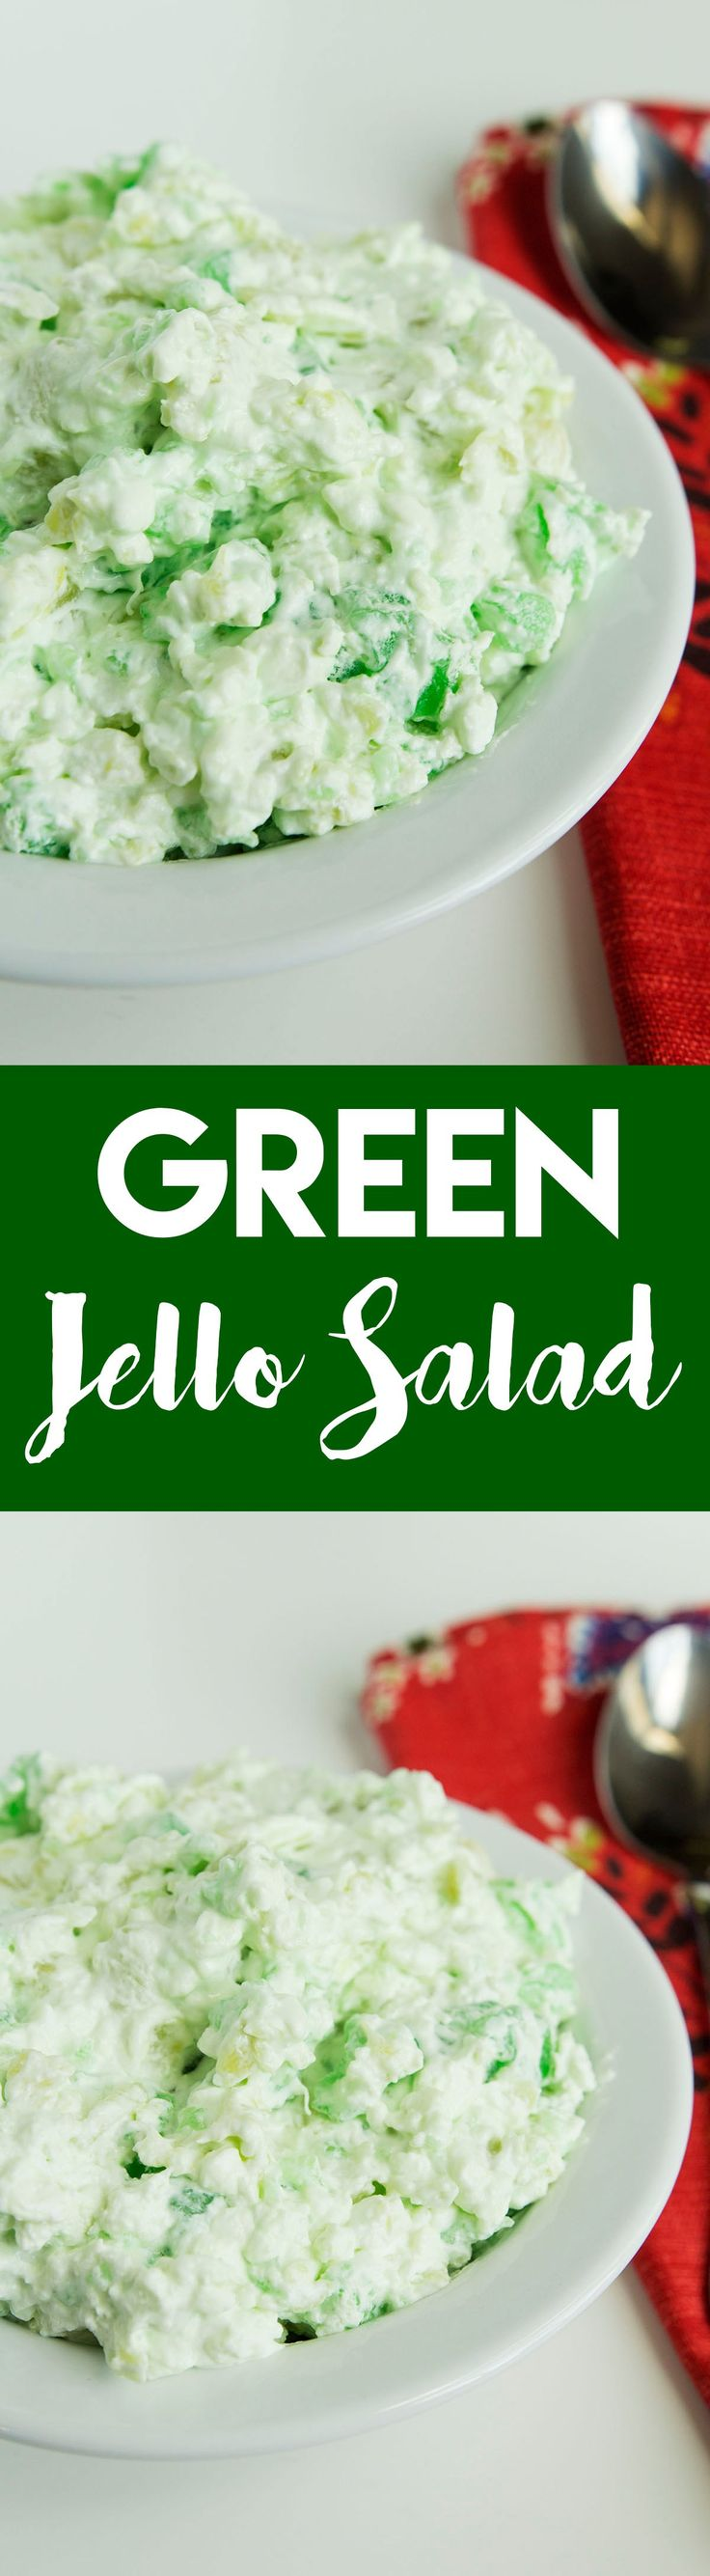 this green jello salad may be a little non-traditional, but it's a great side dish that's perfectly at home at a backyard barbecue or on your holiday table | goldenbrownanddelicious.com